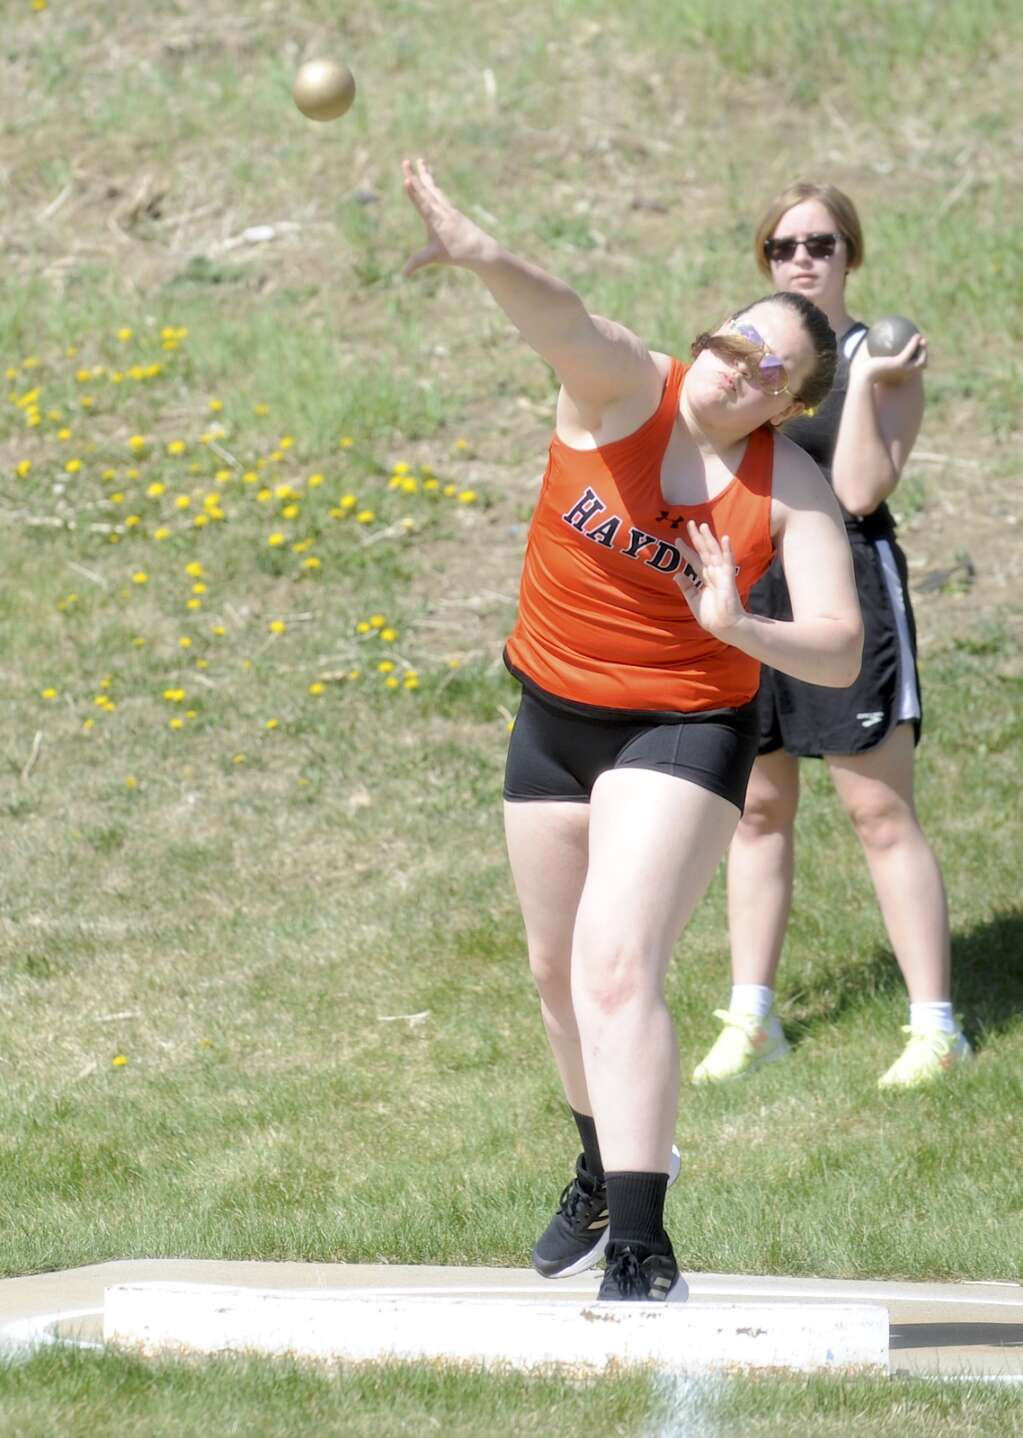 Hayden's Dakota Munden competes in shot put at the Clint Wells Invitational in Craig on Friday. (Photo by Shelby Reardon)